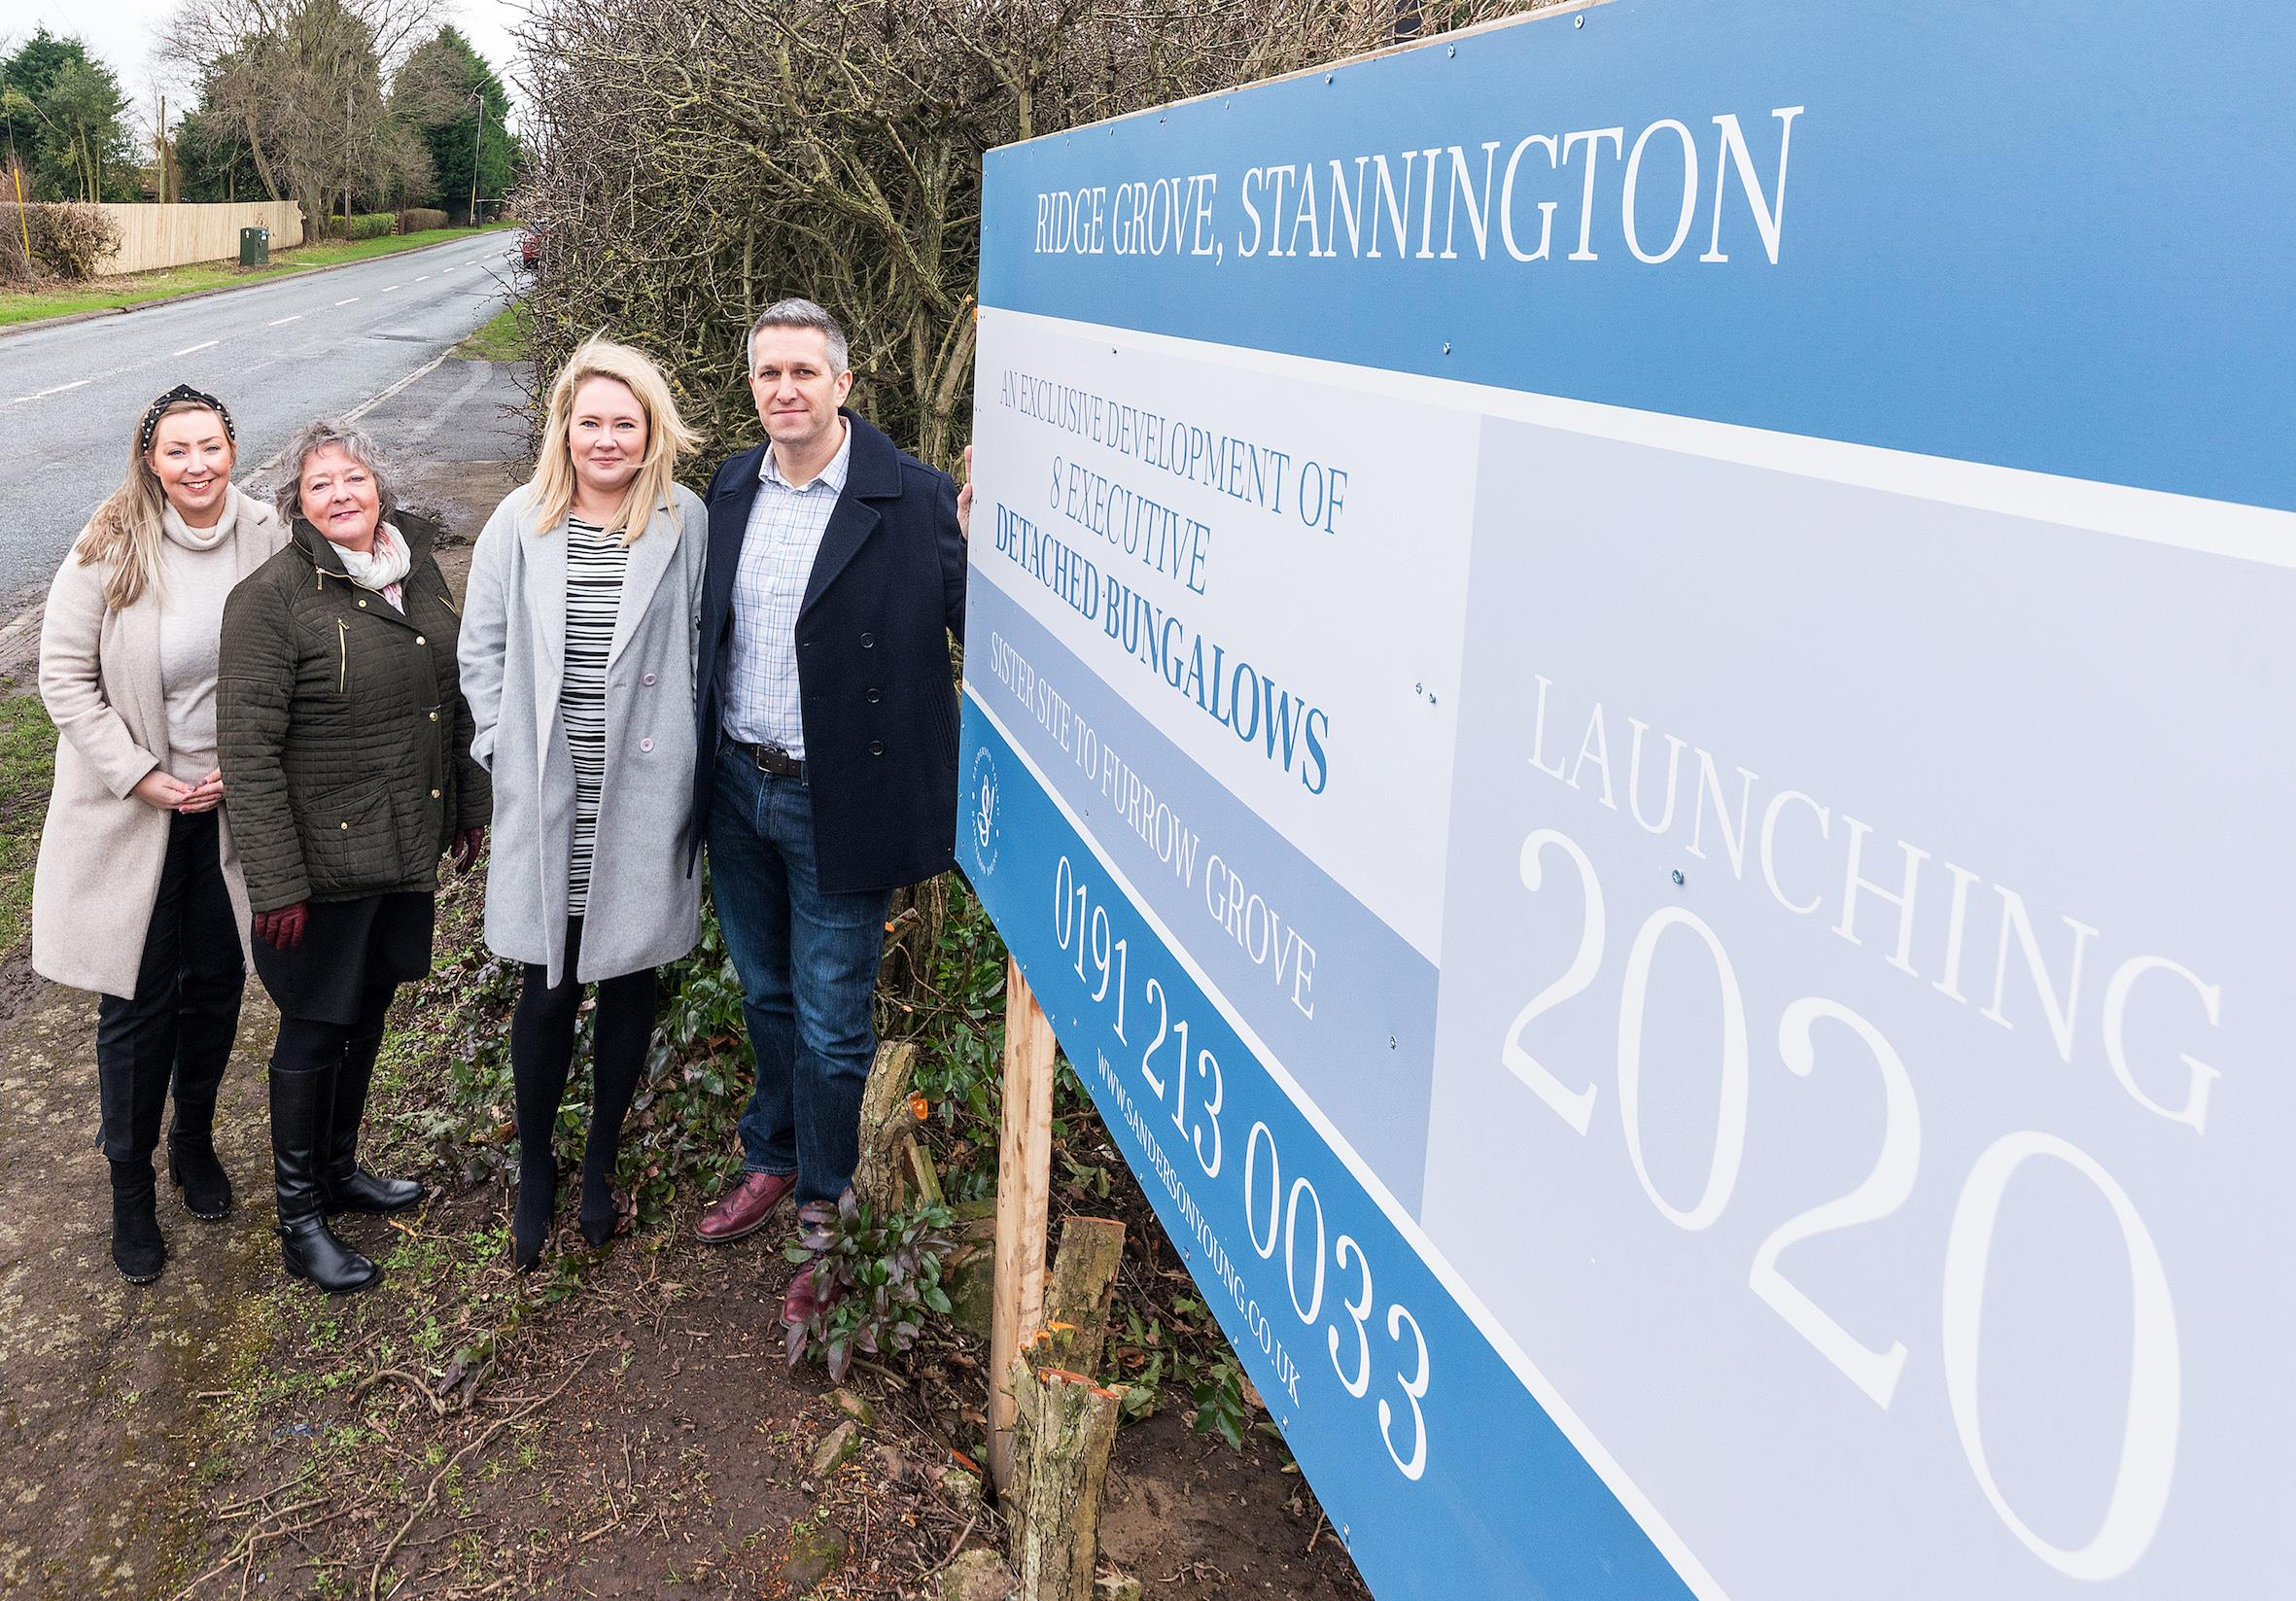 Bungalow developers Altoria acquire sister site in Stannington